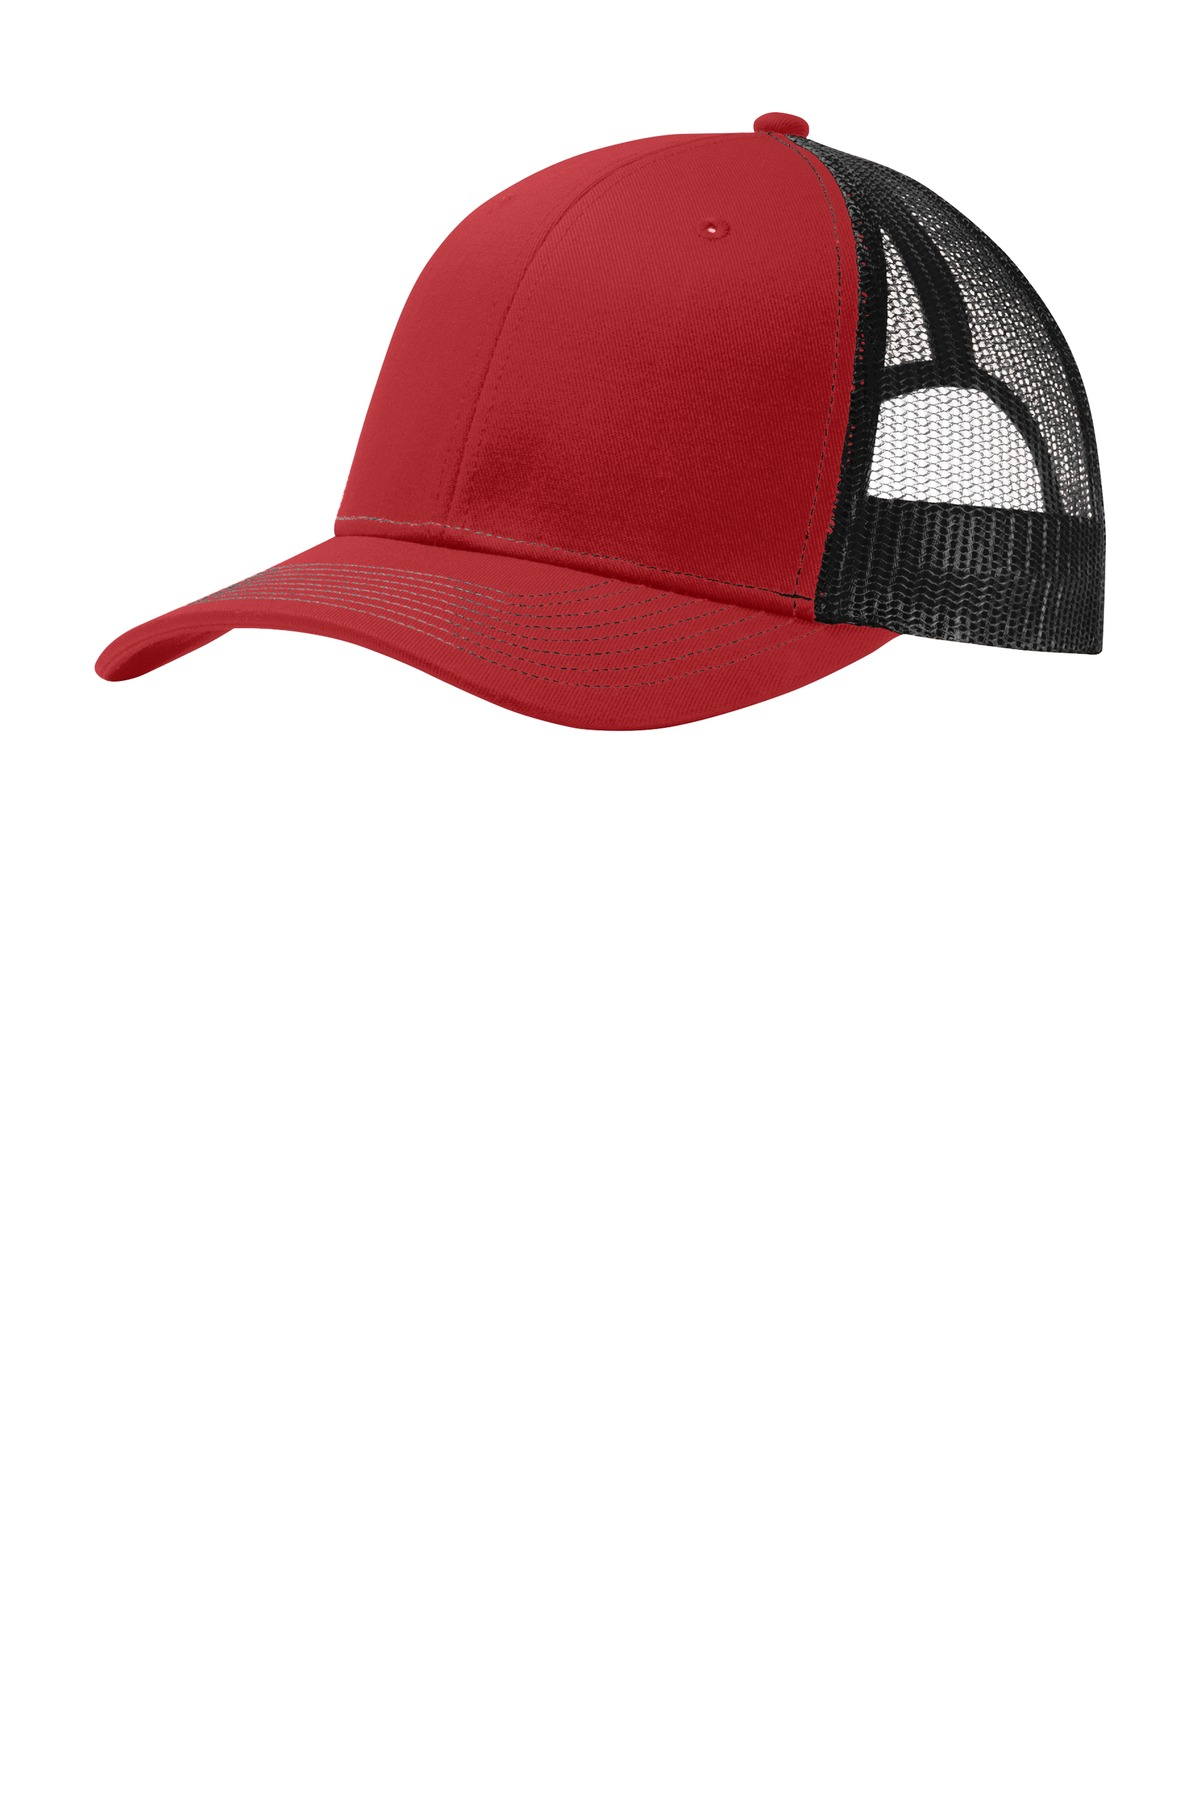 Port Authority ®  Snapback Trucker Cap. C112 - Flame Red/ Black